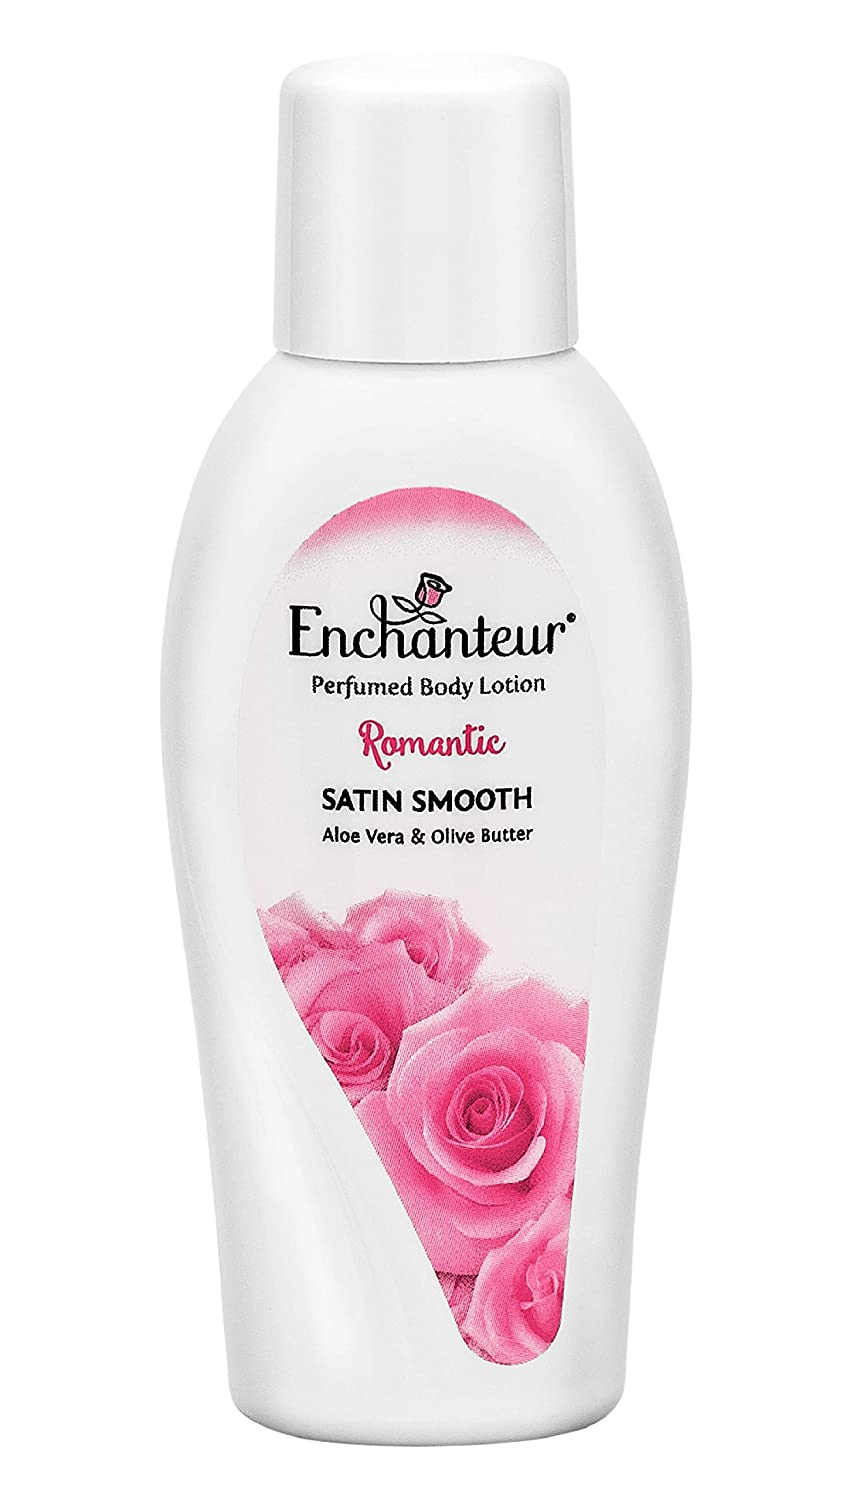 [Pantry] Enchanteur Romantic Body Lotion 30ml